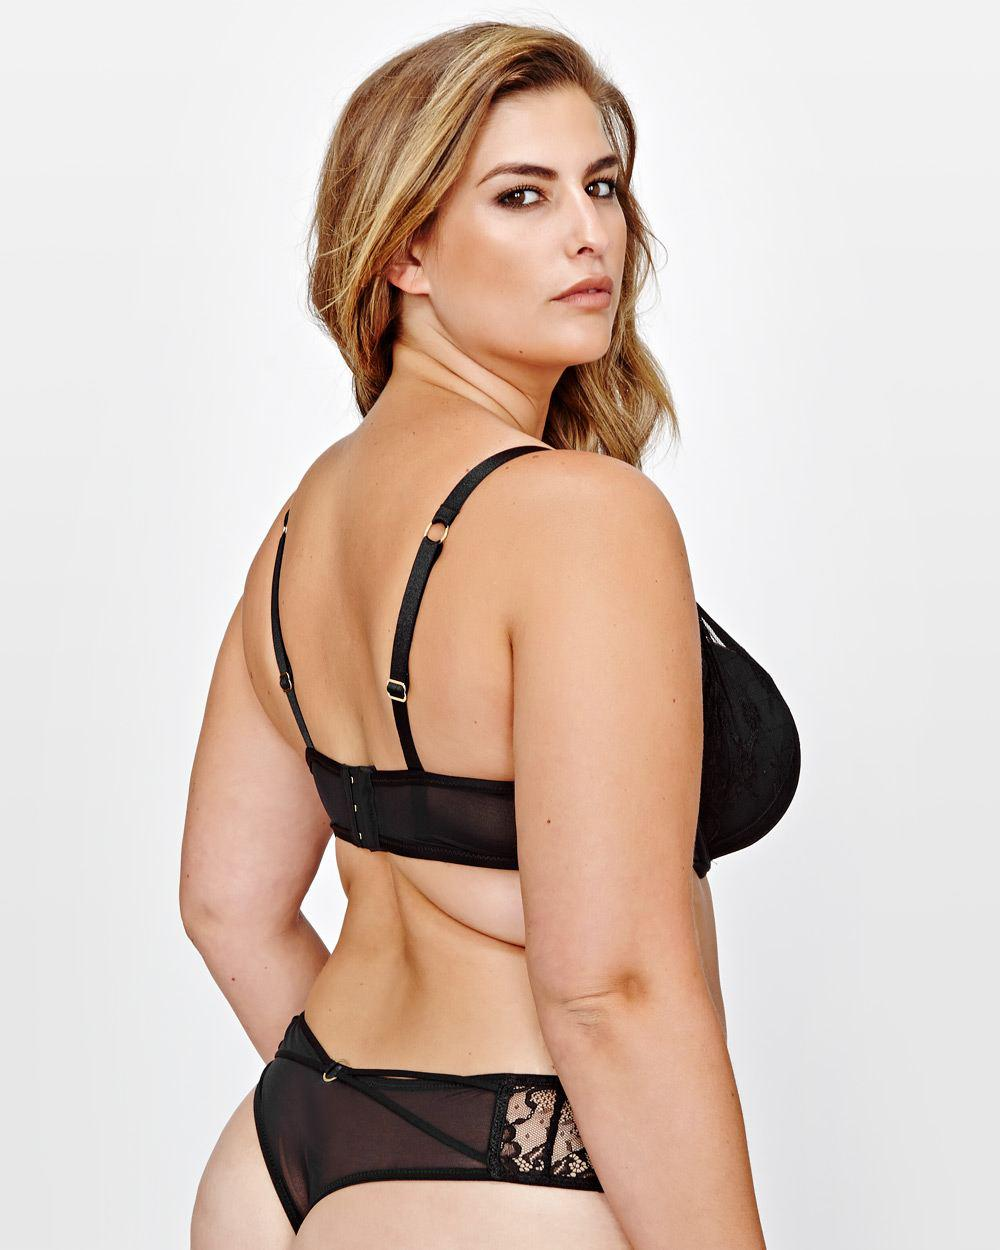 d249b290a56b5 Lyst - Addition Elle Ashley Graham Diva Lace   Straps Bra With Front Strap  in Black